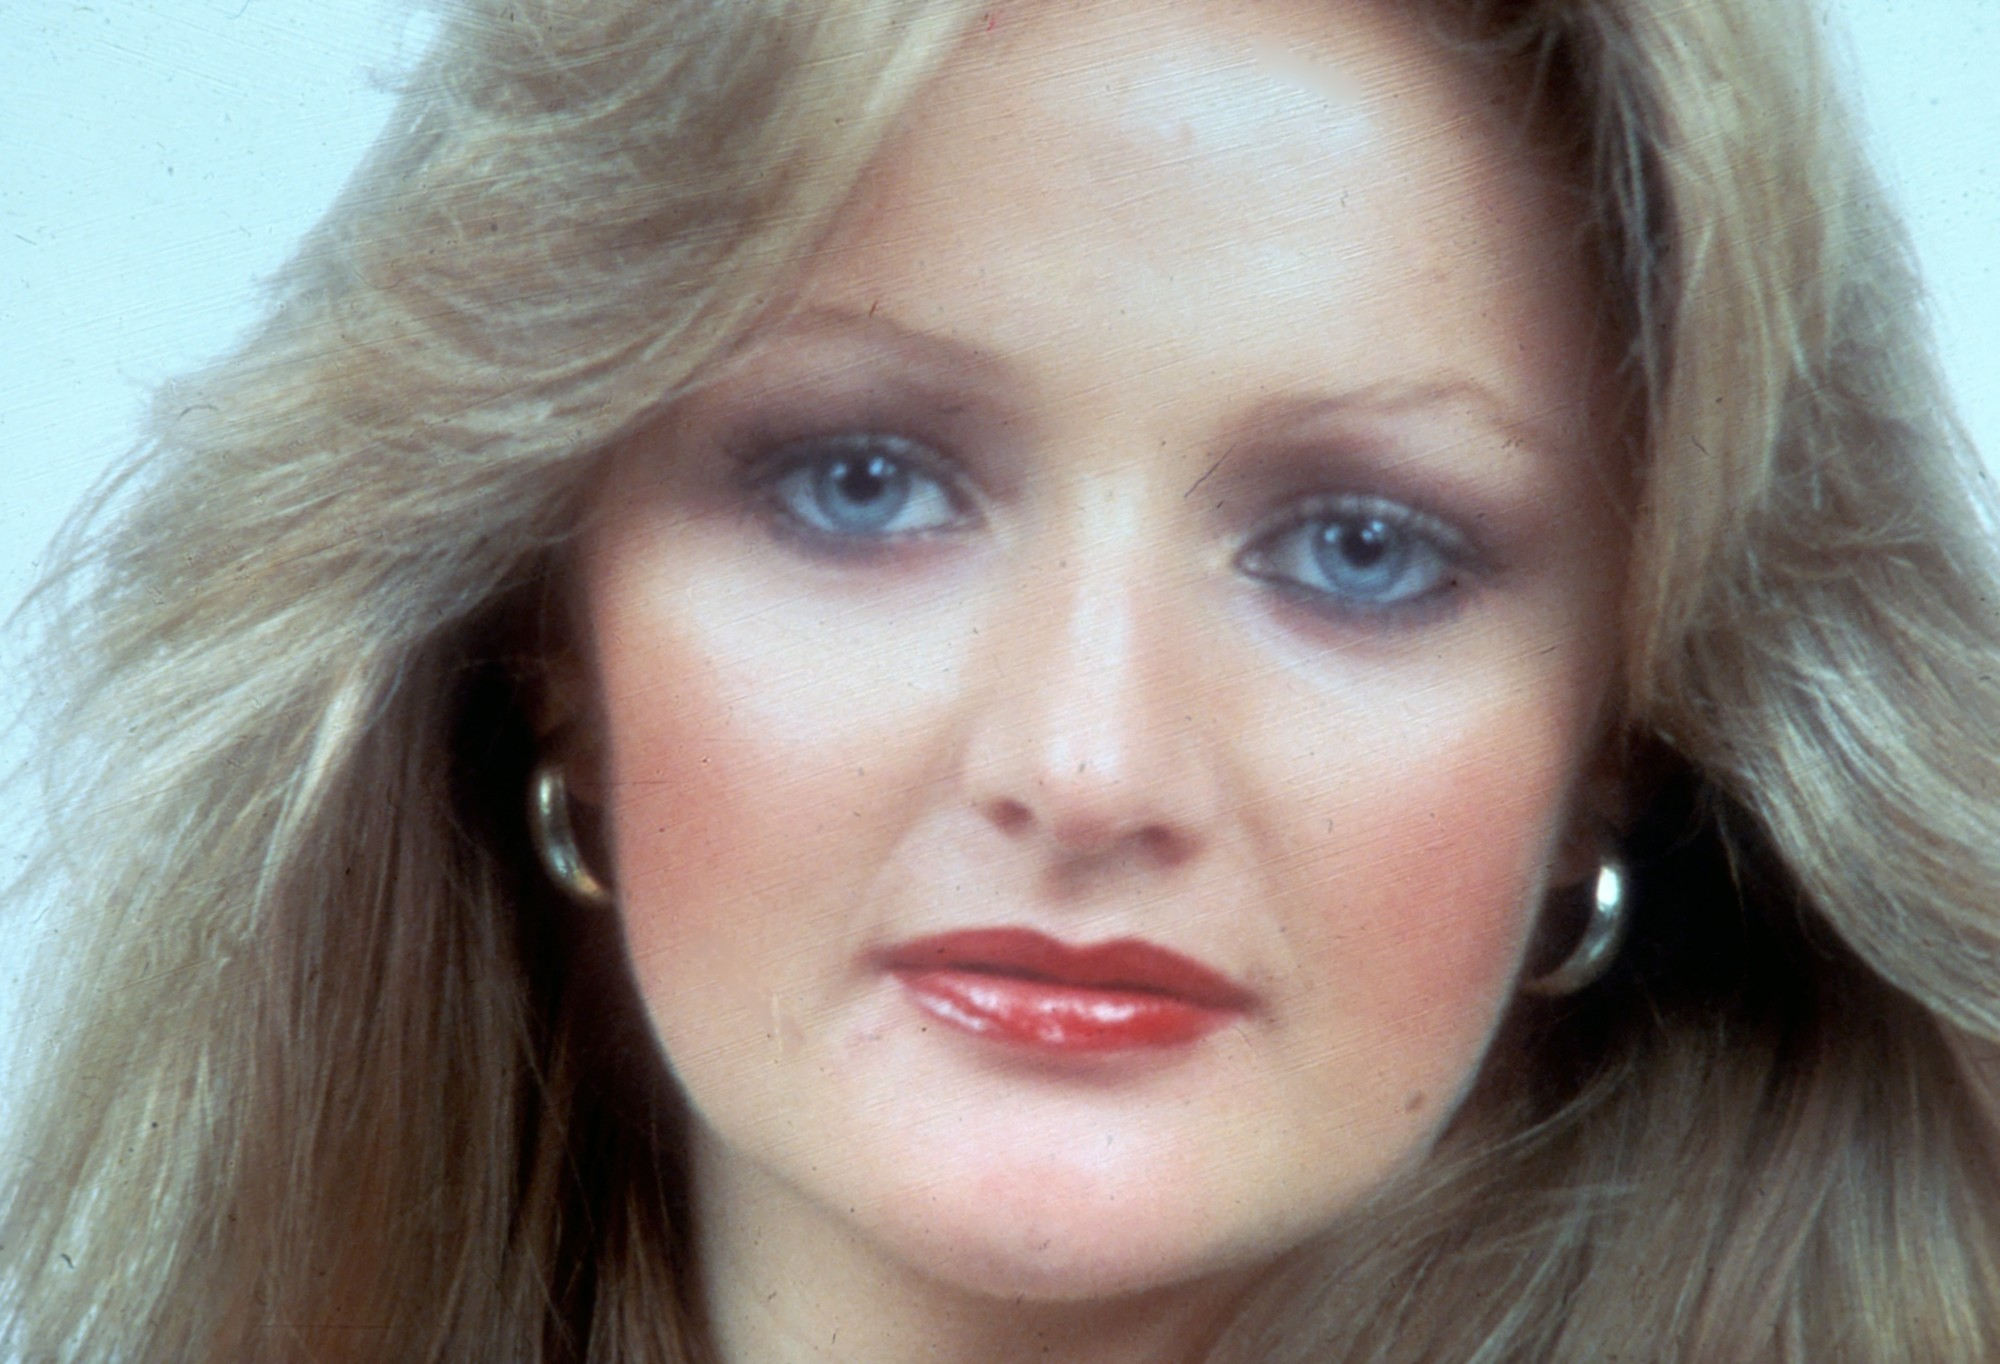 bonnie tyler images bonnie tyler hd wallpaper and